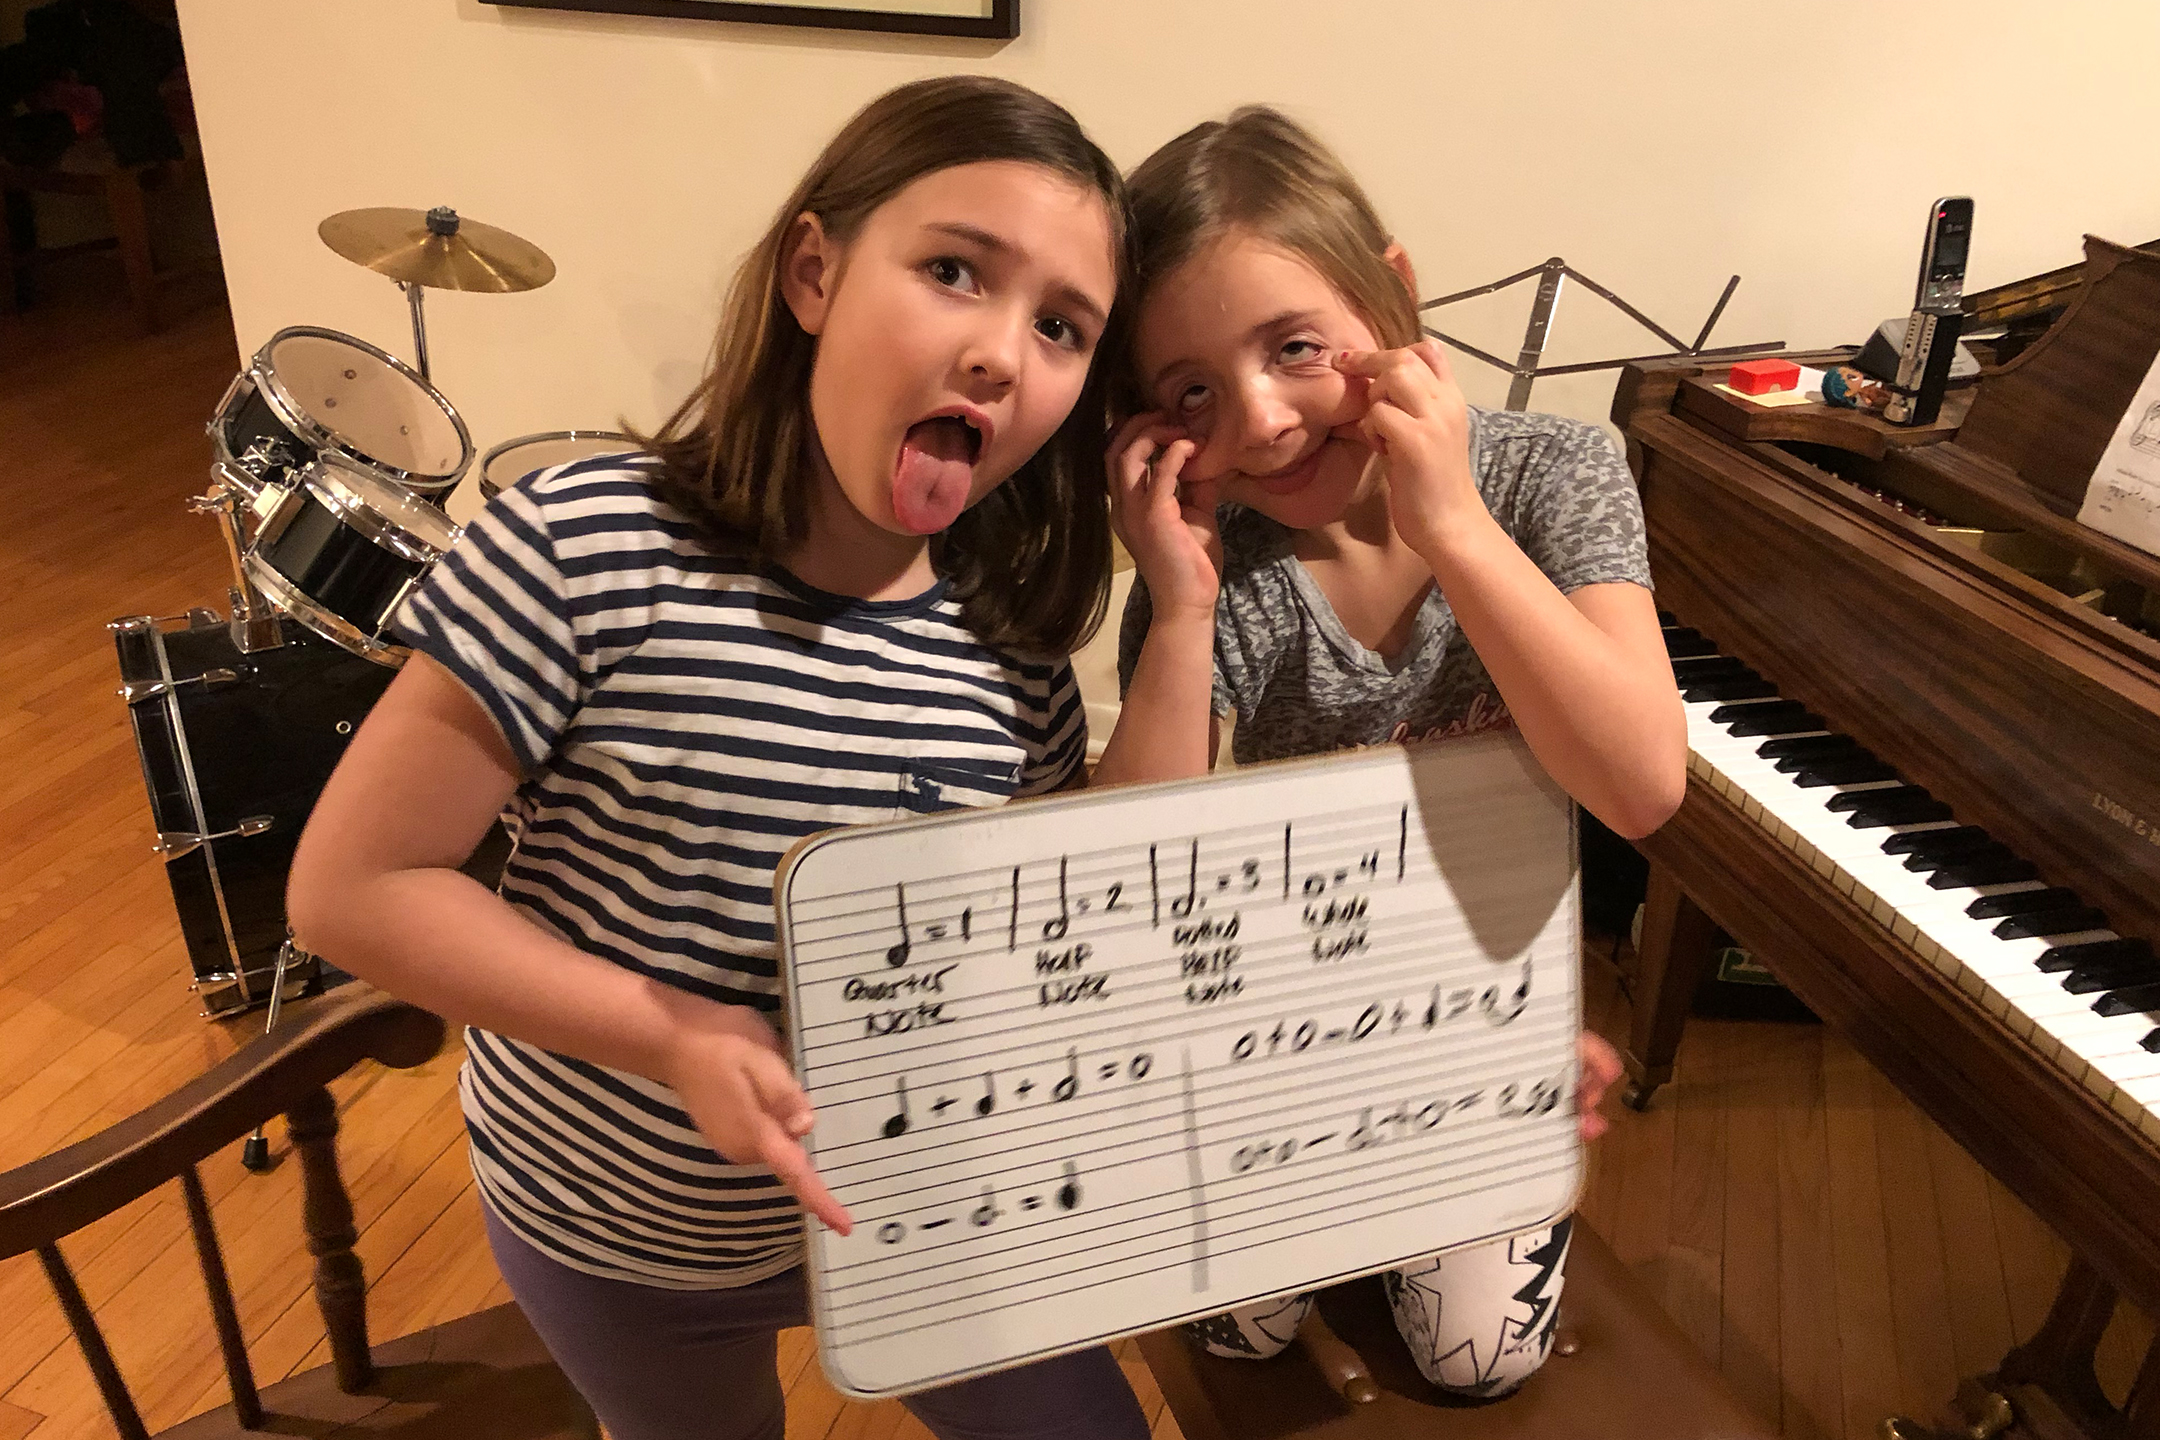 girls making funny faces holding up sheet music in front of piano